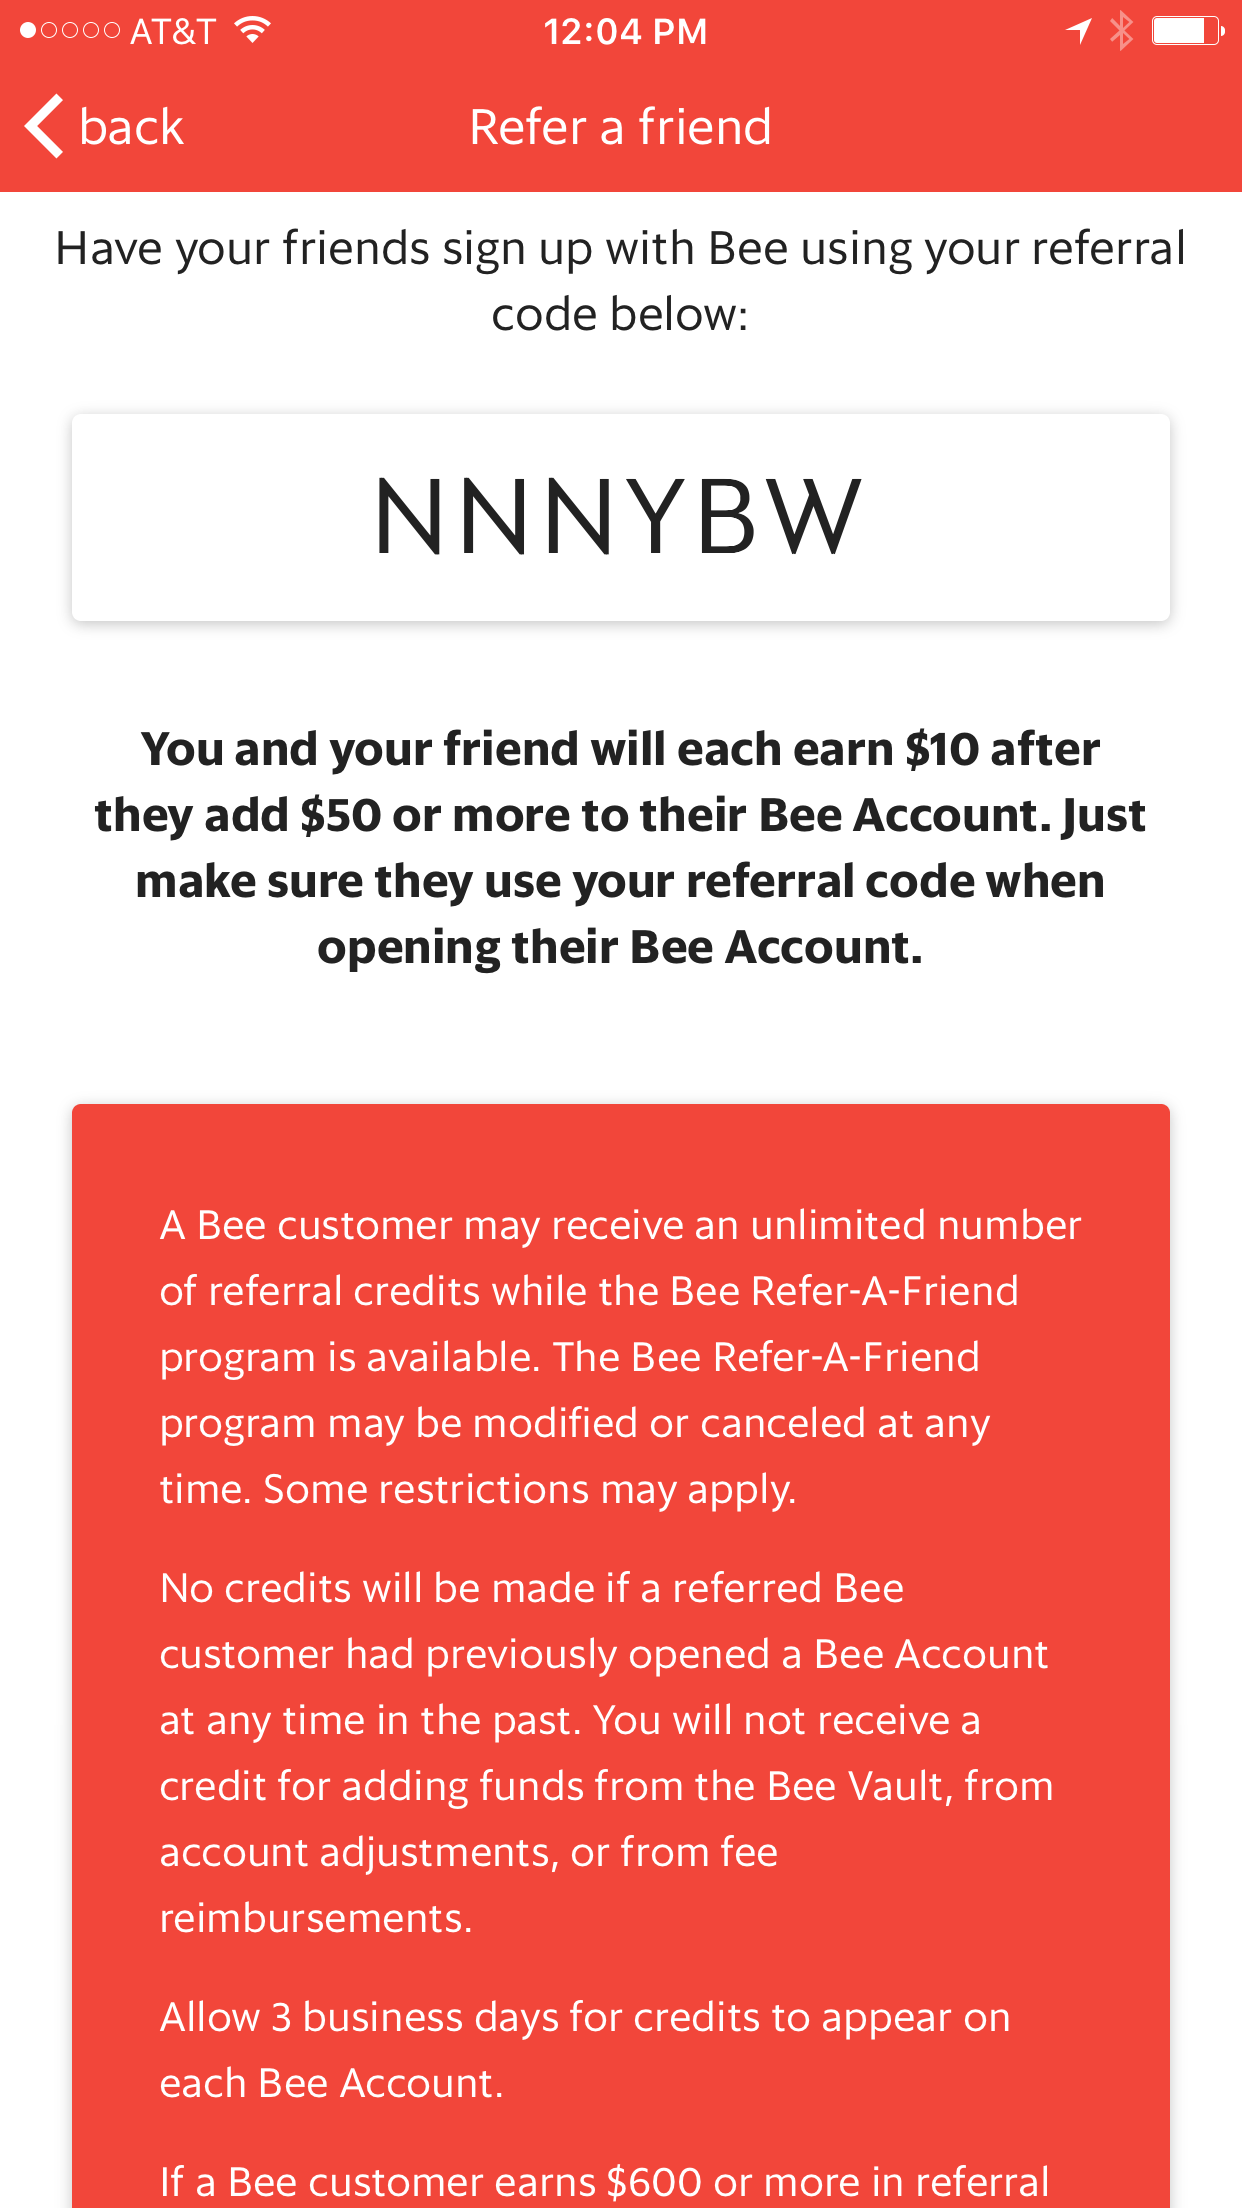 Get $10 FREE when you open a bank account with Bee and Deposit $50 No obligations just use code NNNYBW when you sign up and are prompted